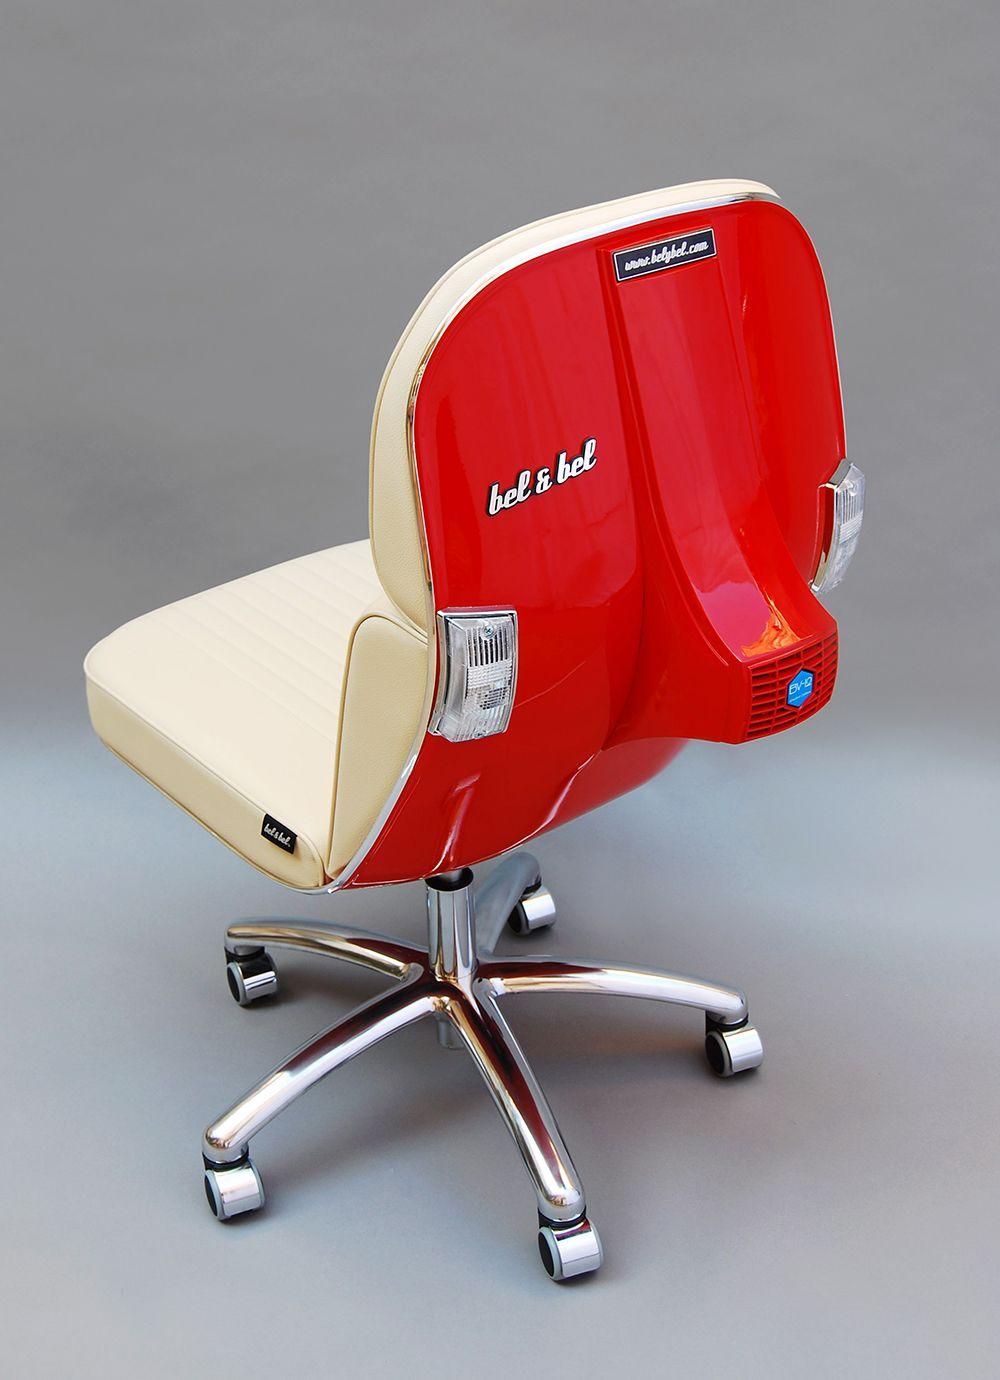 recycled vespa office chairs. Recycled Vespa Office Chairs E